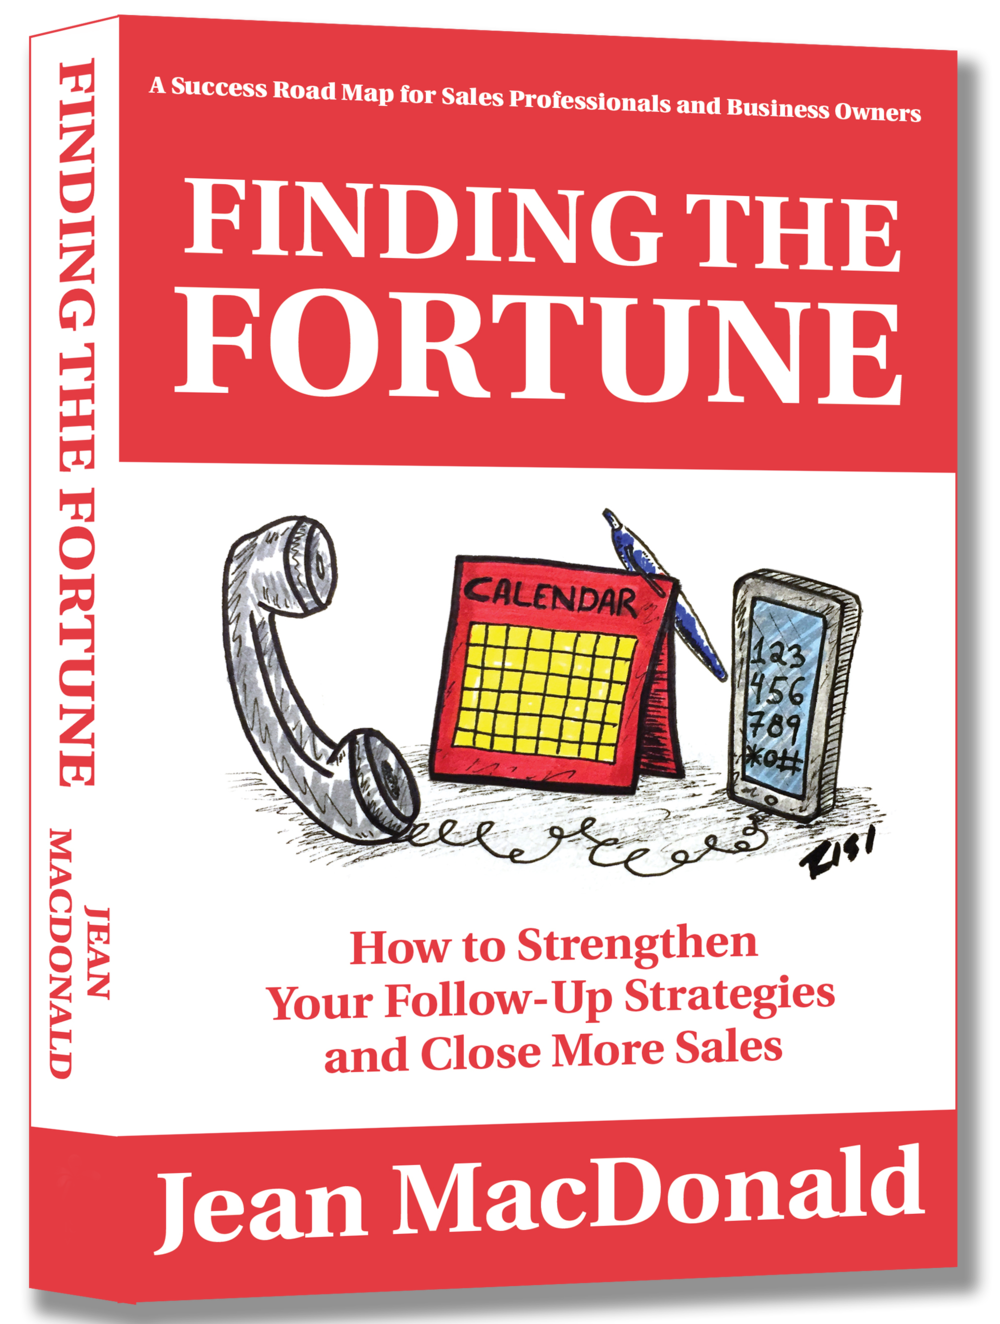 Finding-the-Fortune-Cover.png